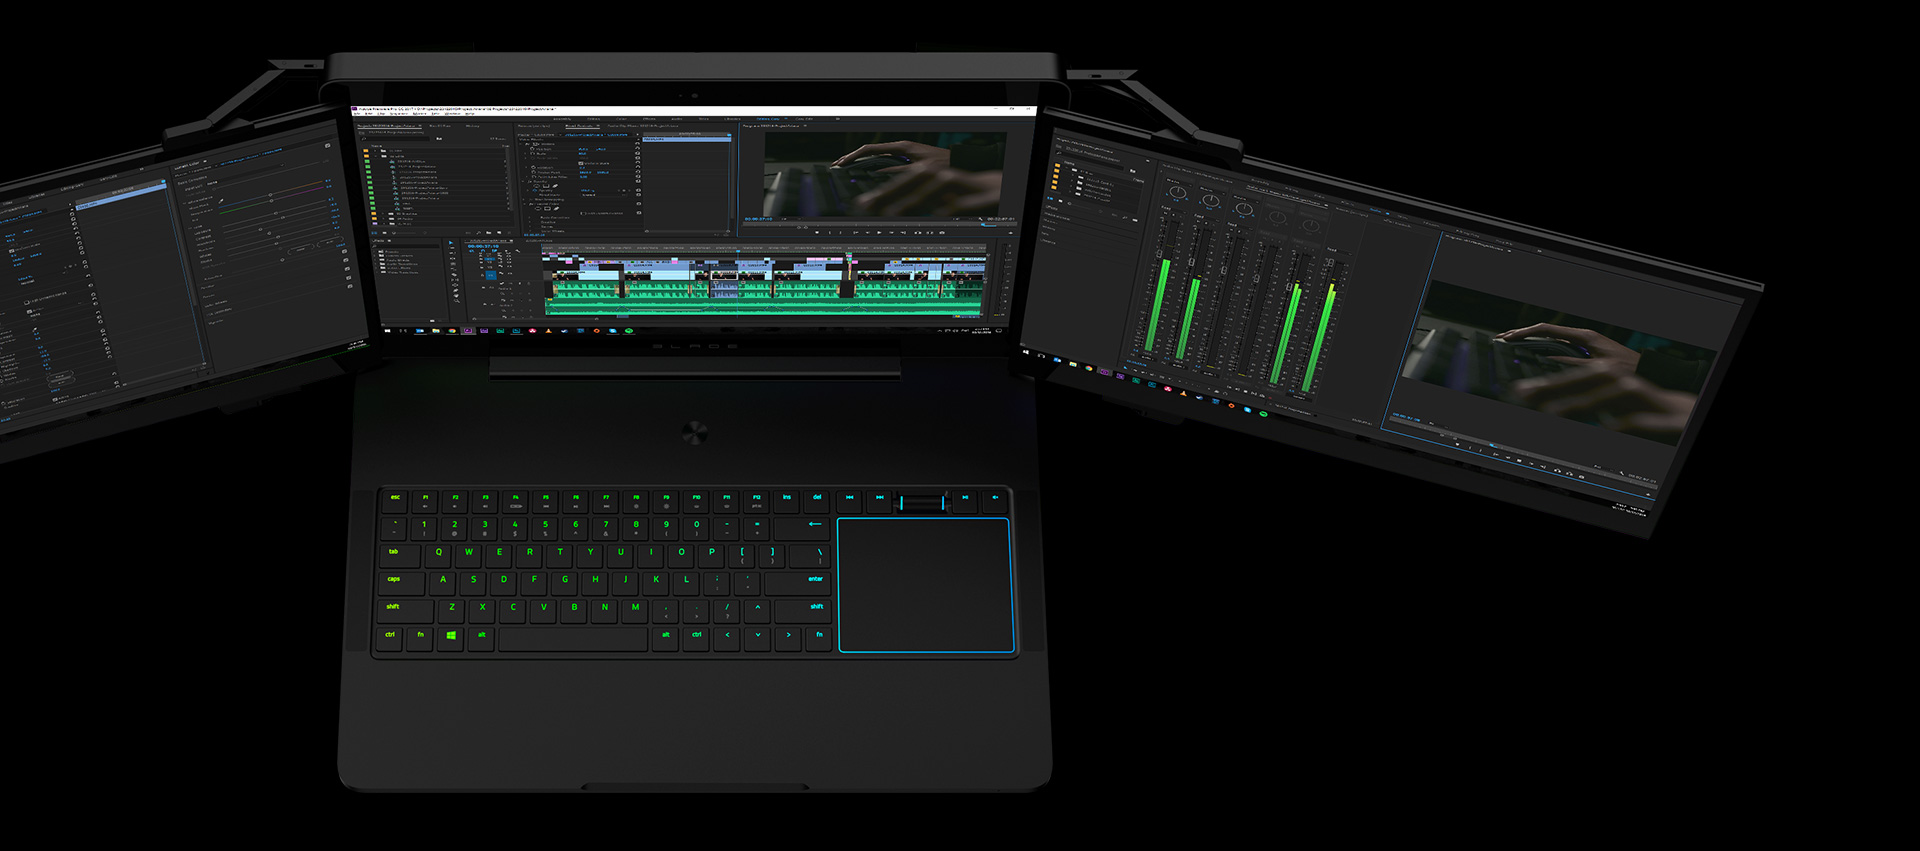 Razer Project Valerie - Triple Display Laptop | Razer United States